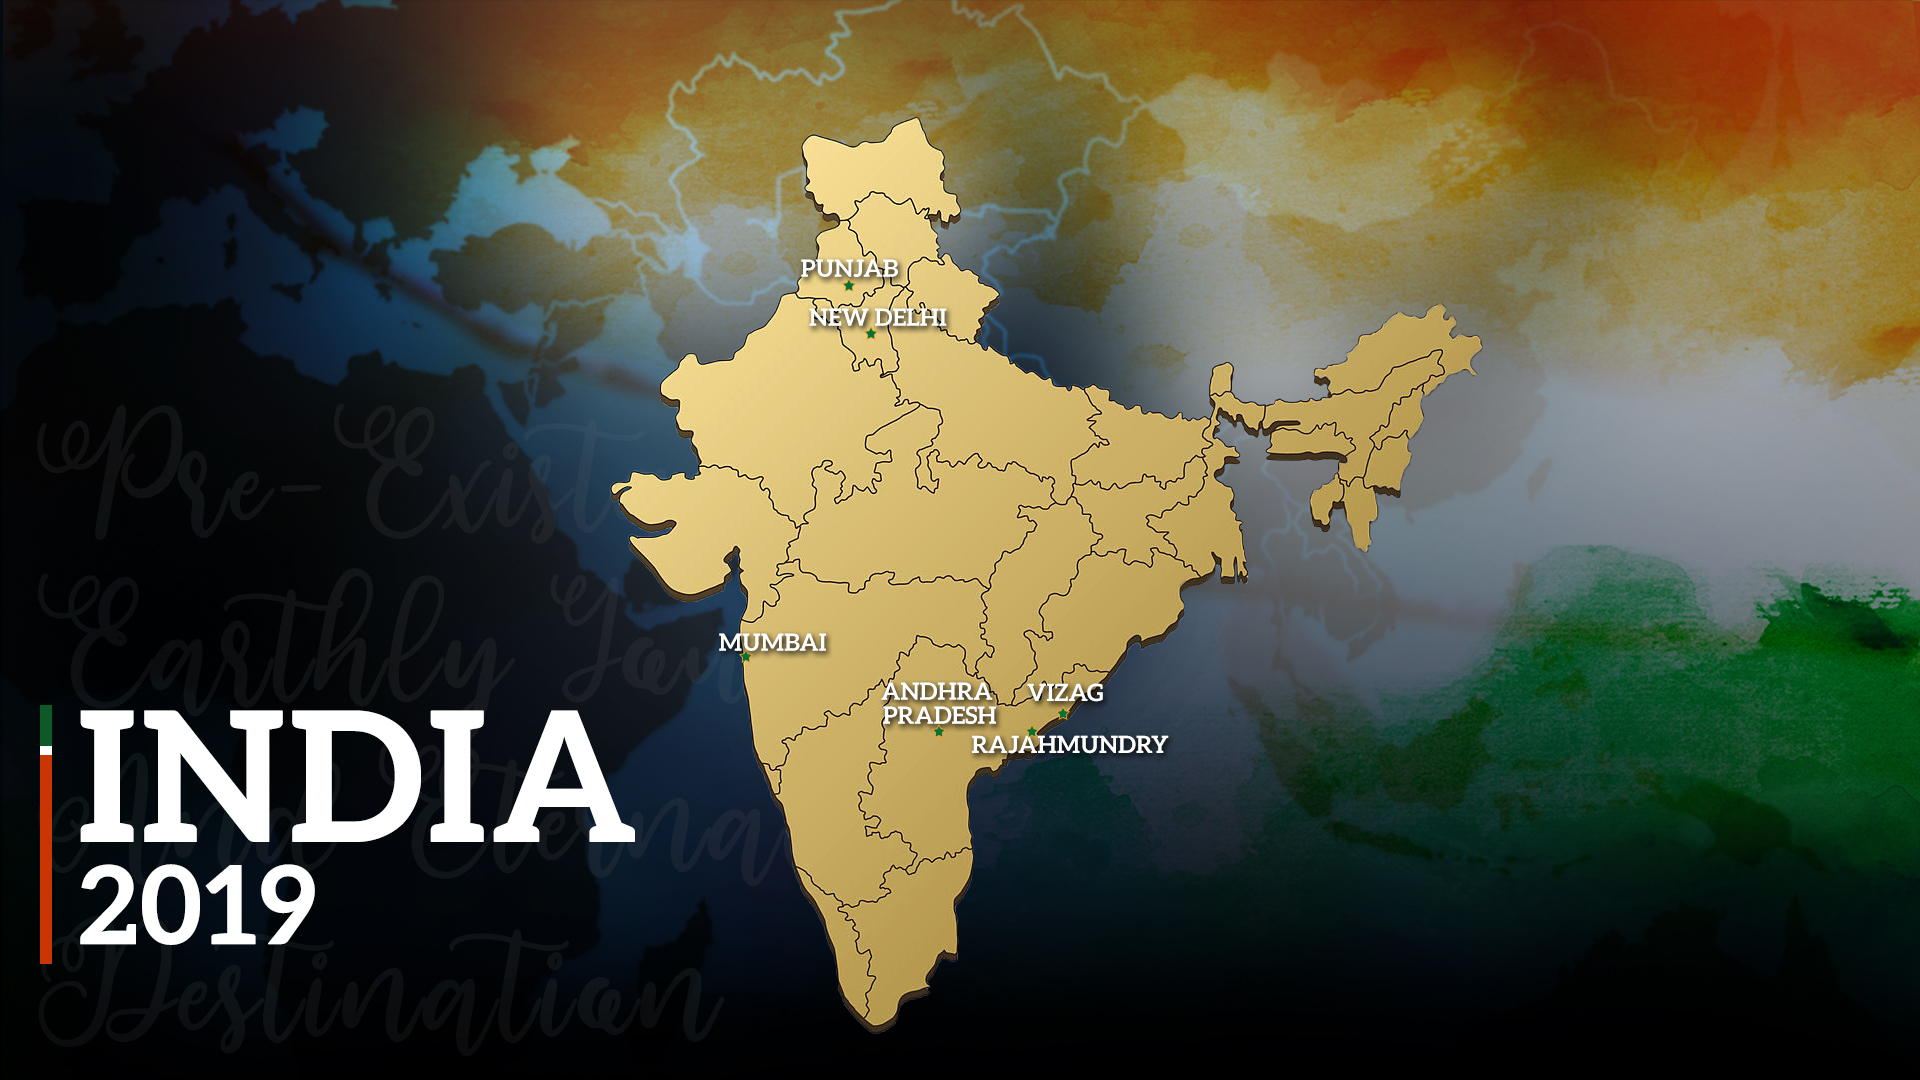 India ad 2019 MAP